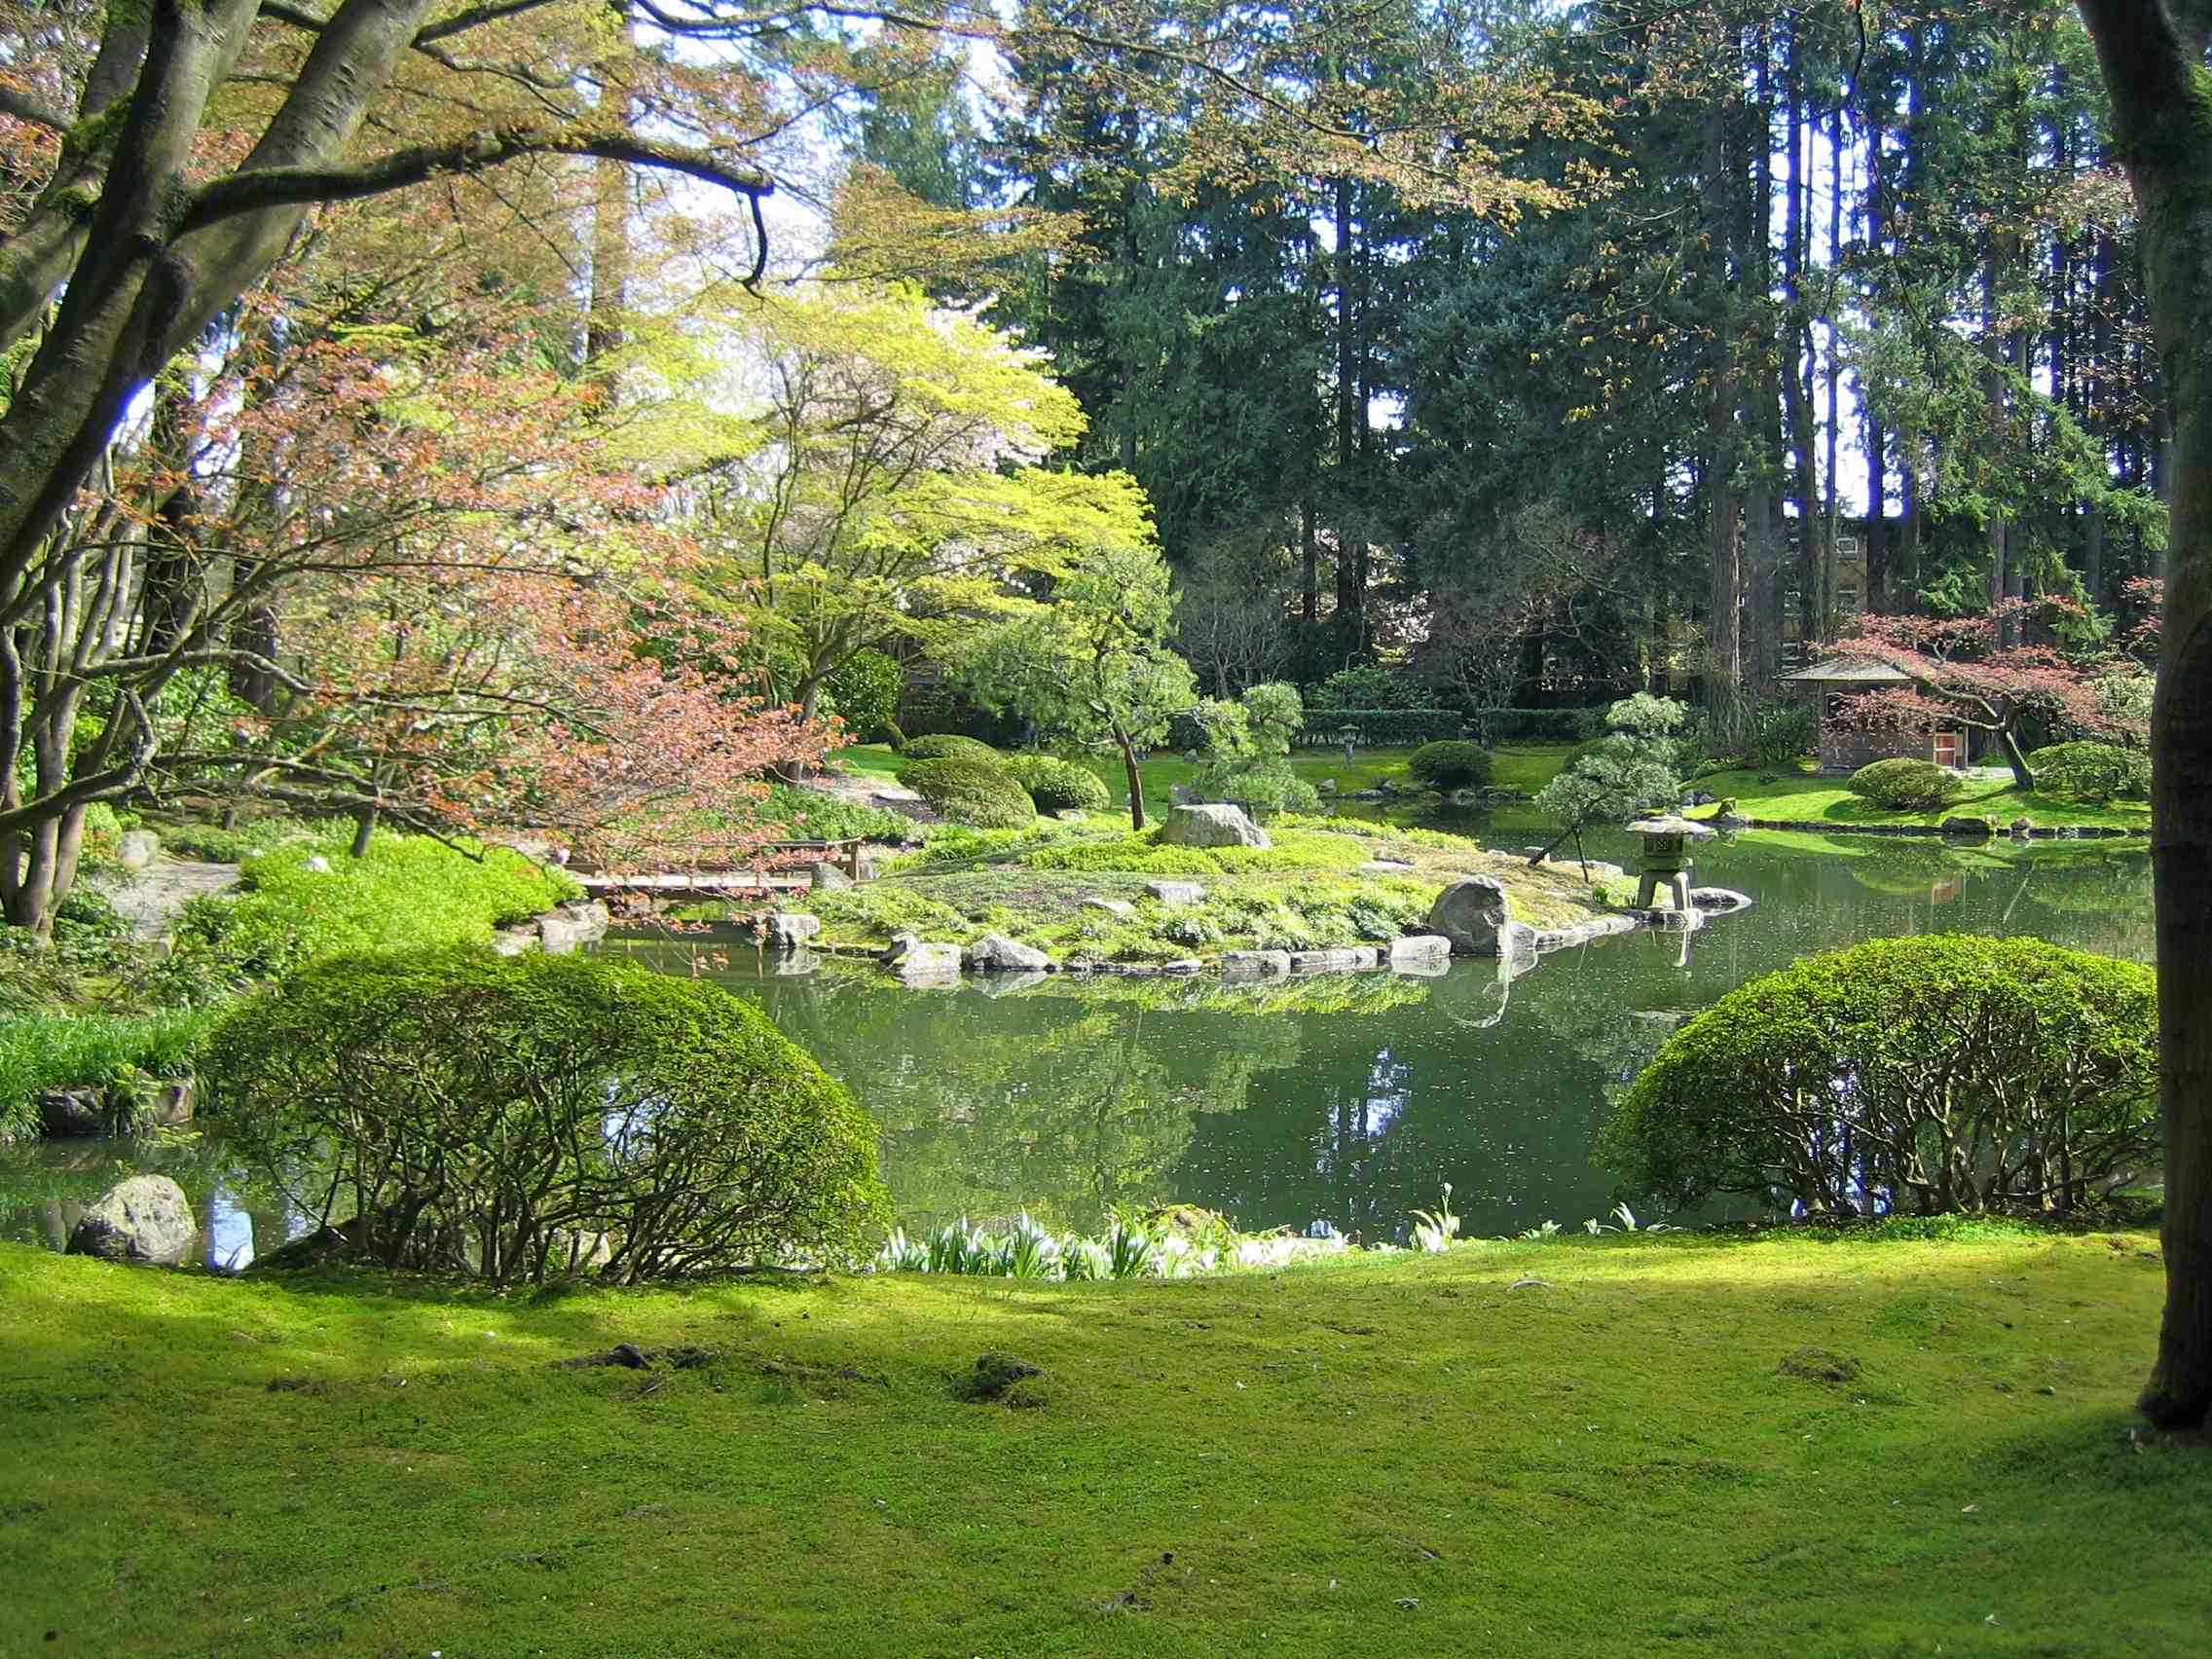 A landscape s story the nitobe memorial garden ekostories for Garden landscape photos